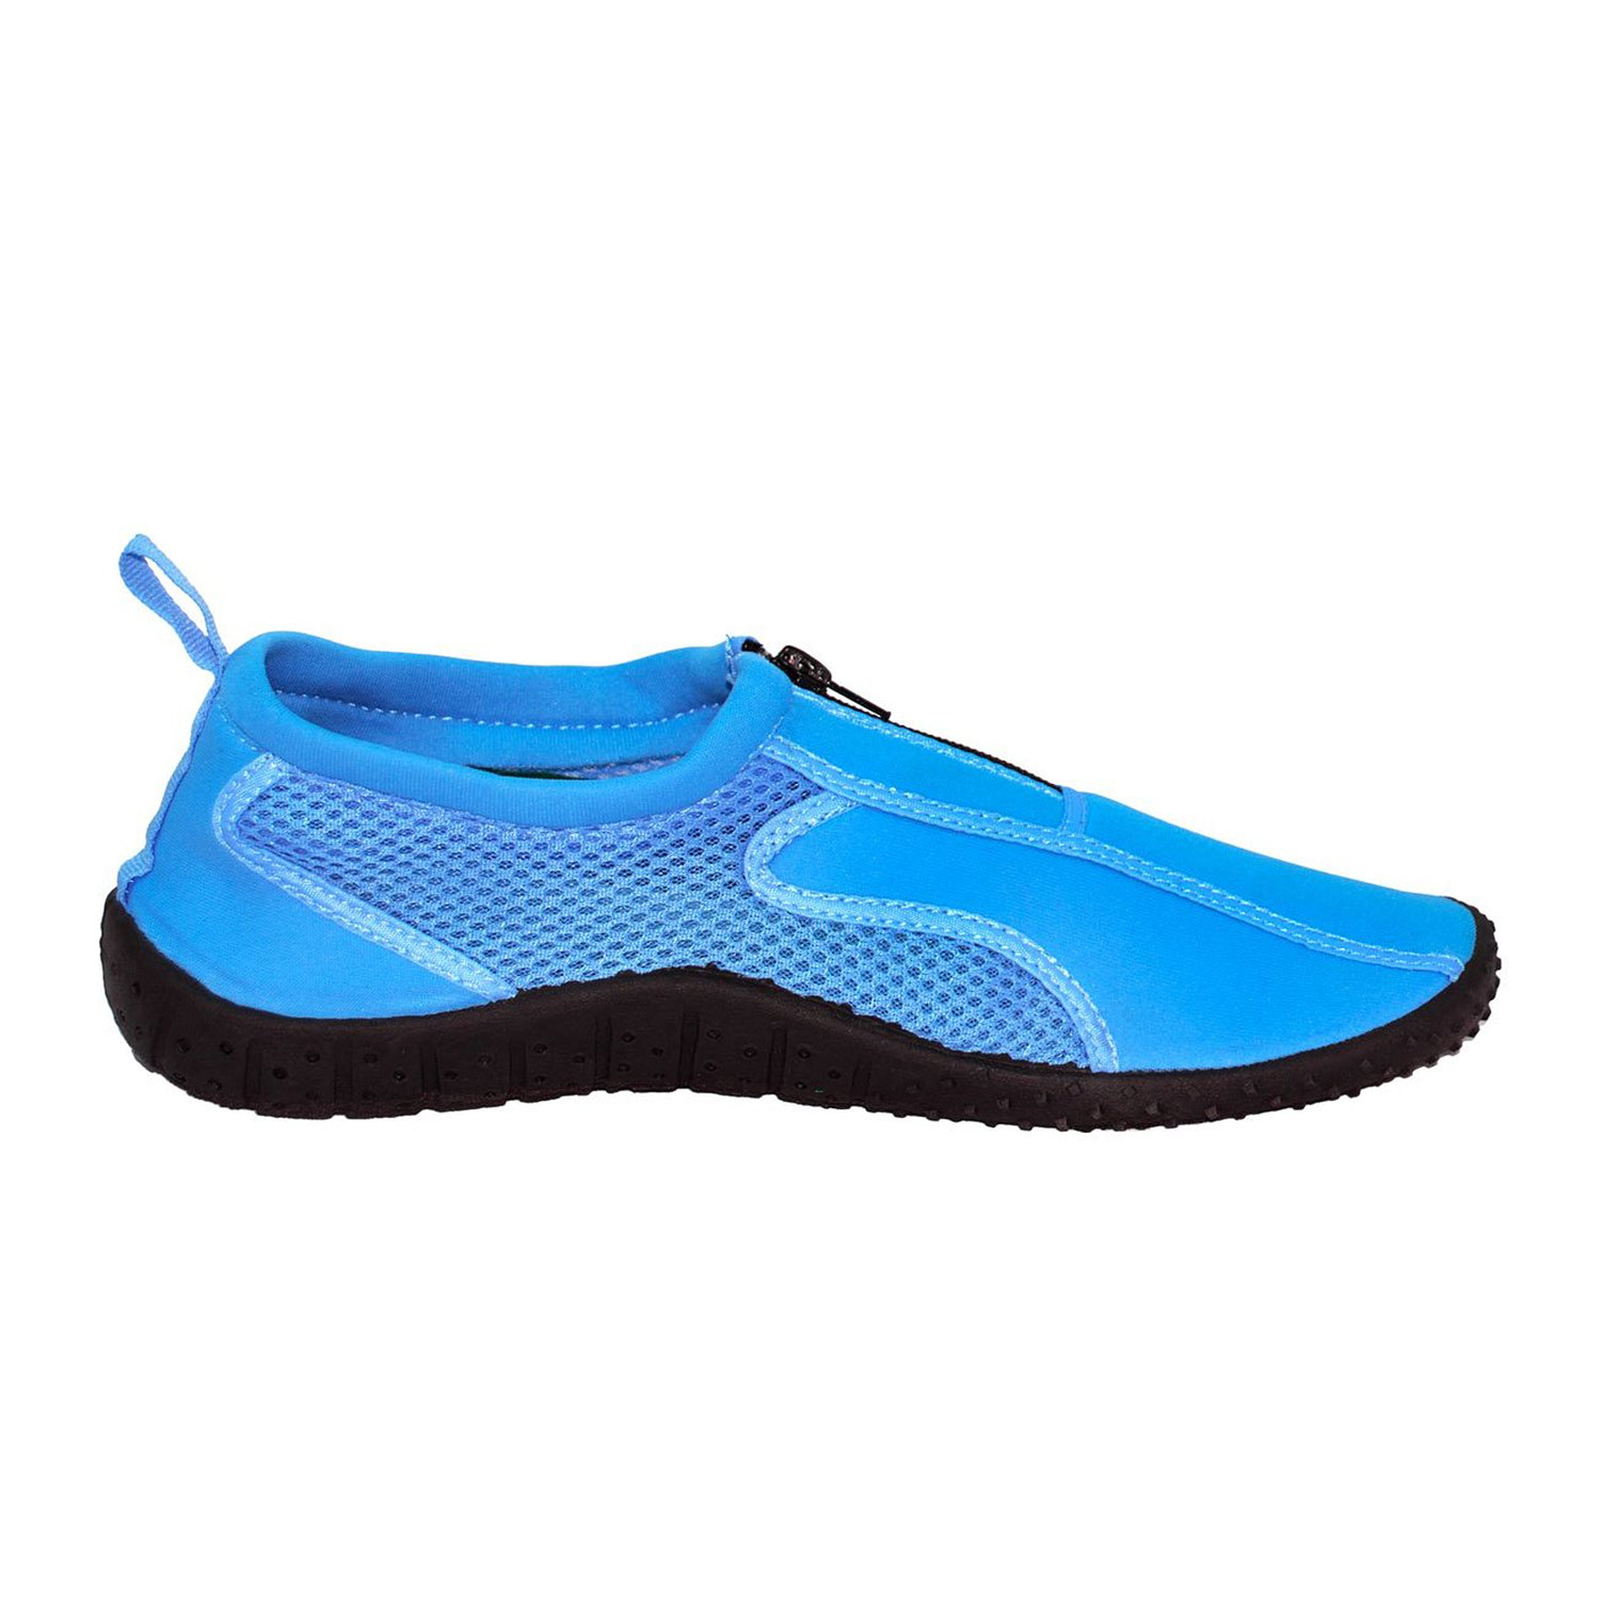 rockin footwear mens rubber aqua neon zippered swim water